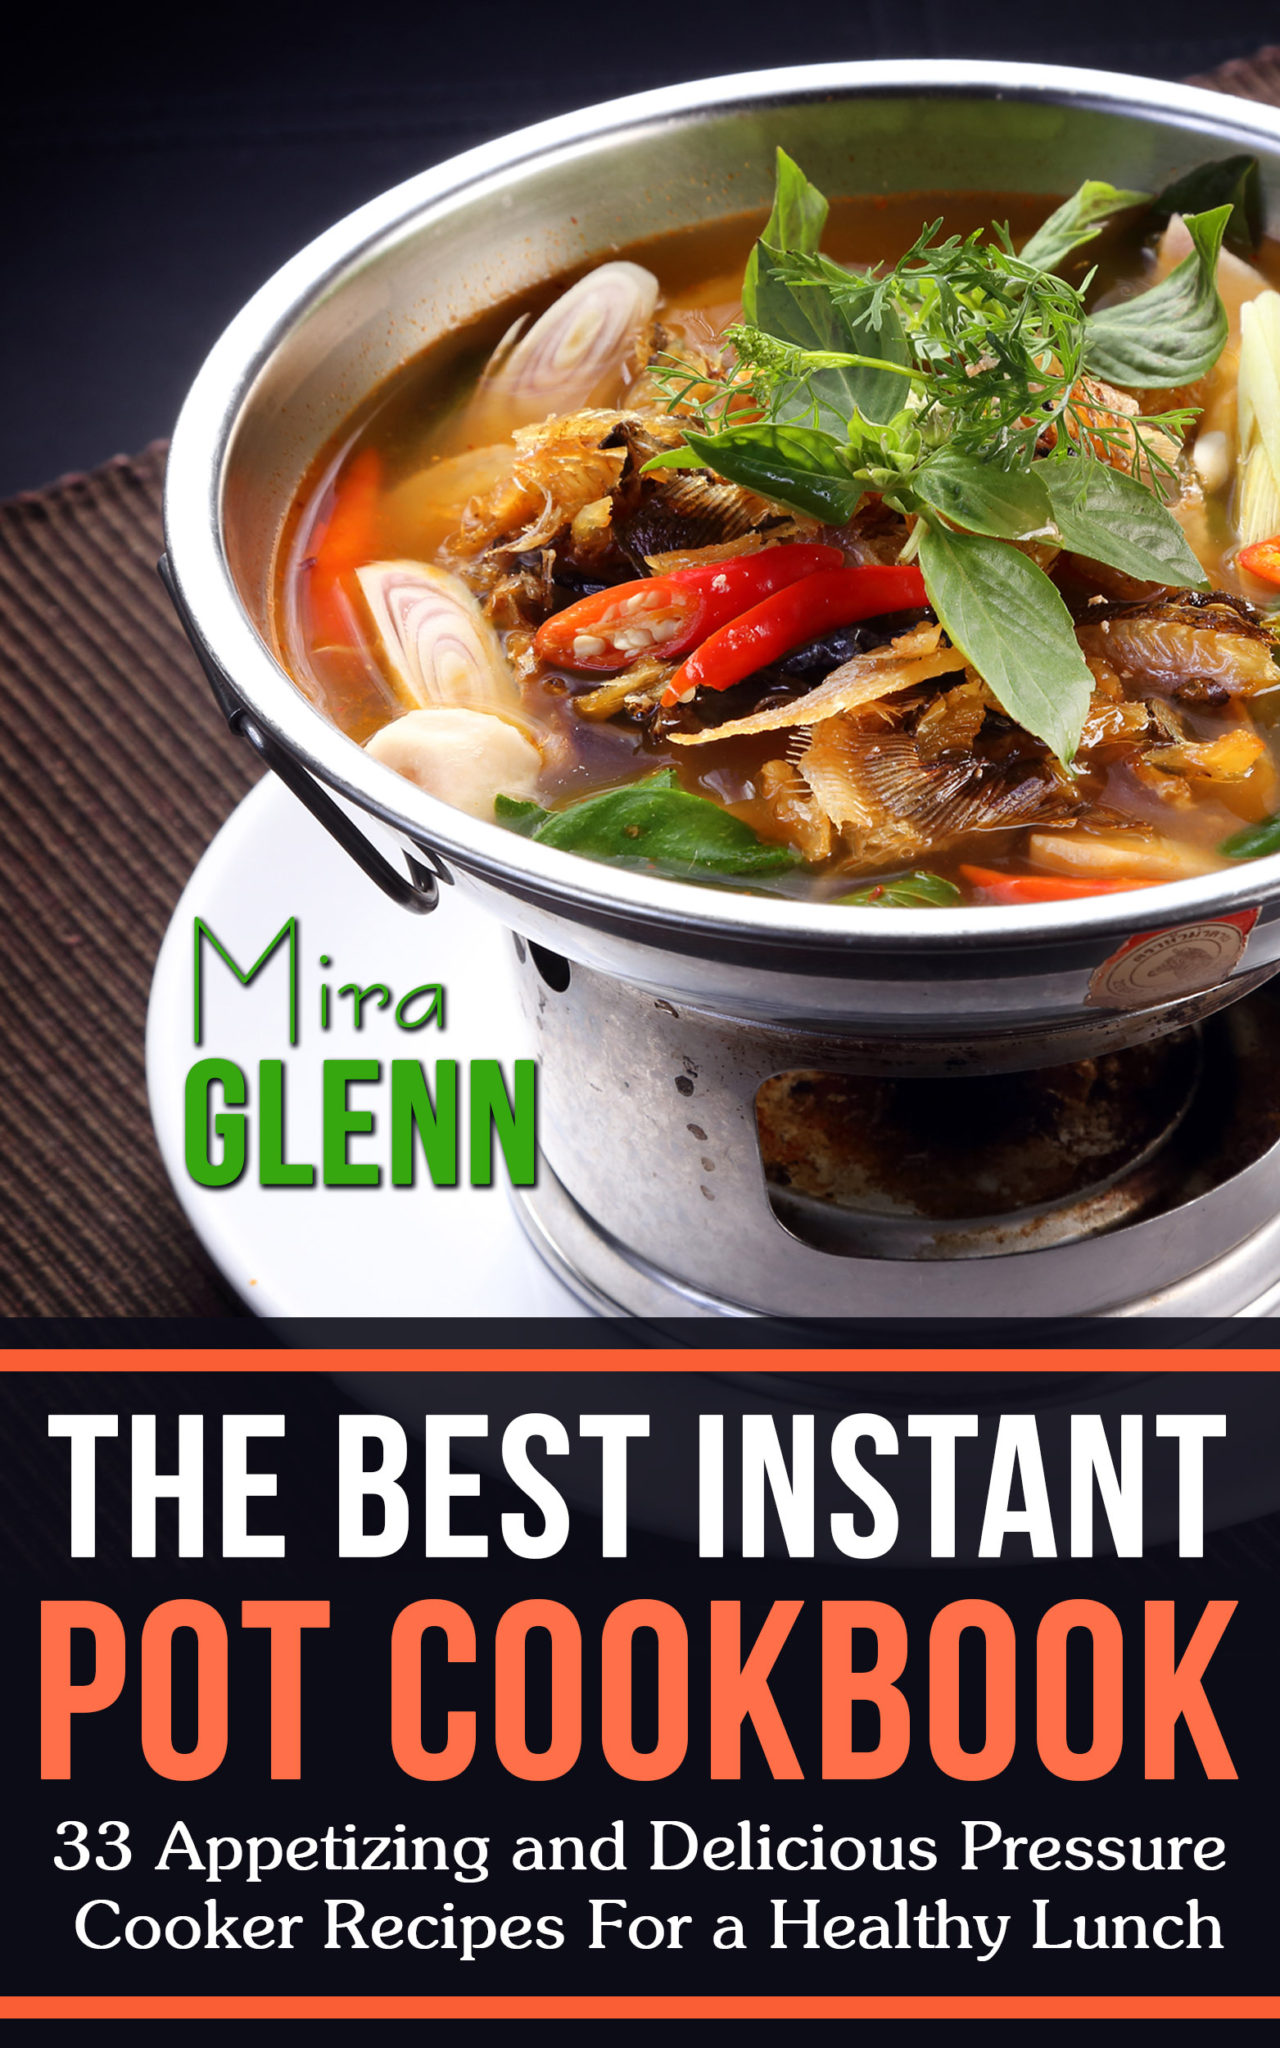 Instant Pot Cookbook Covers ~ Free the best instant pot cookbook appetizing and